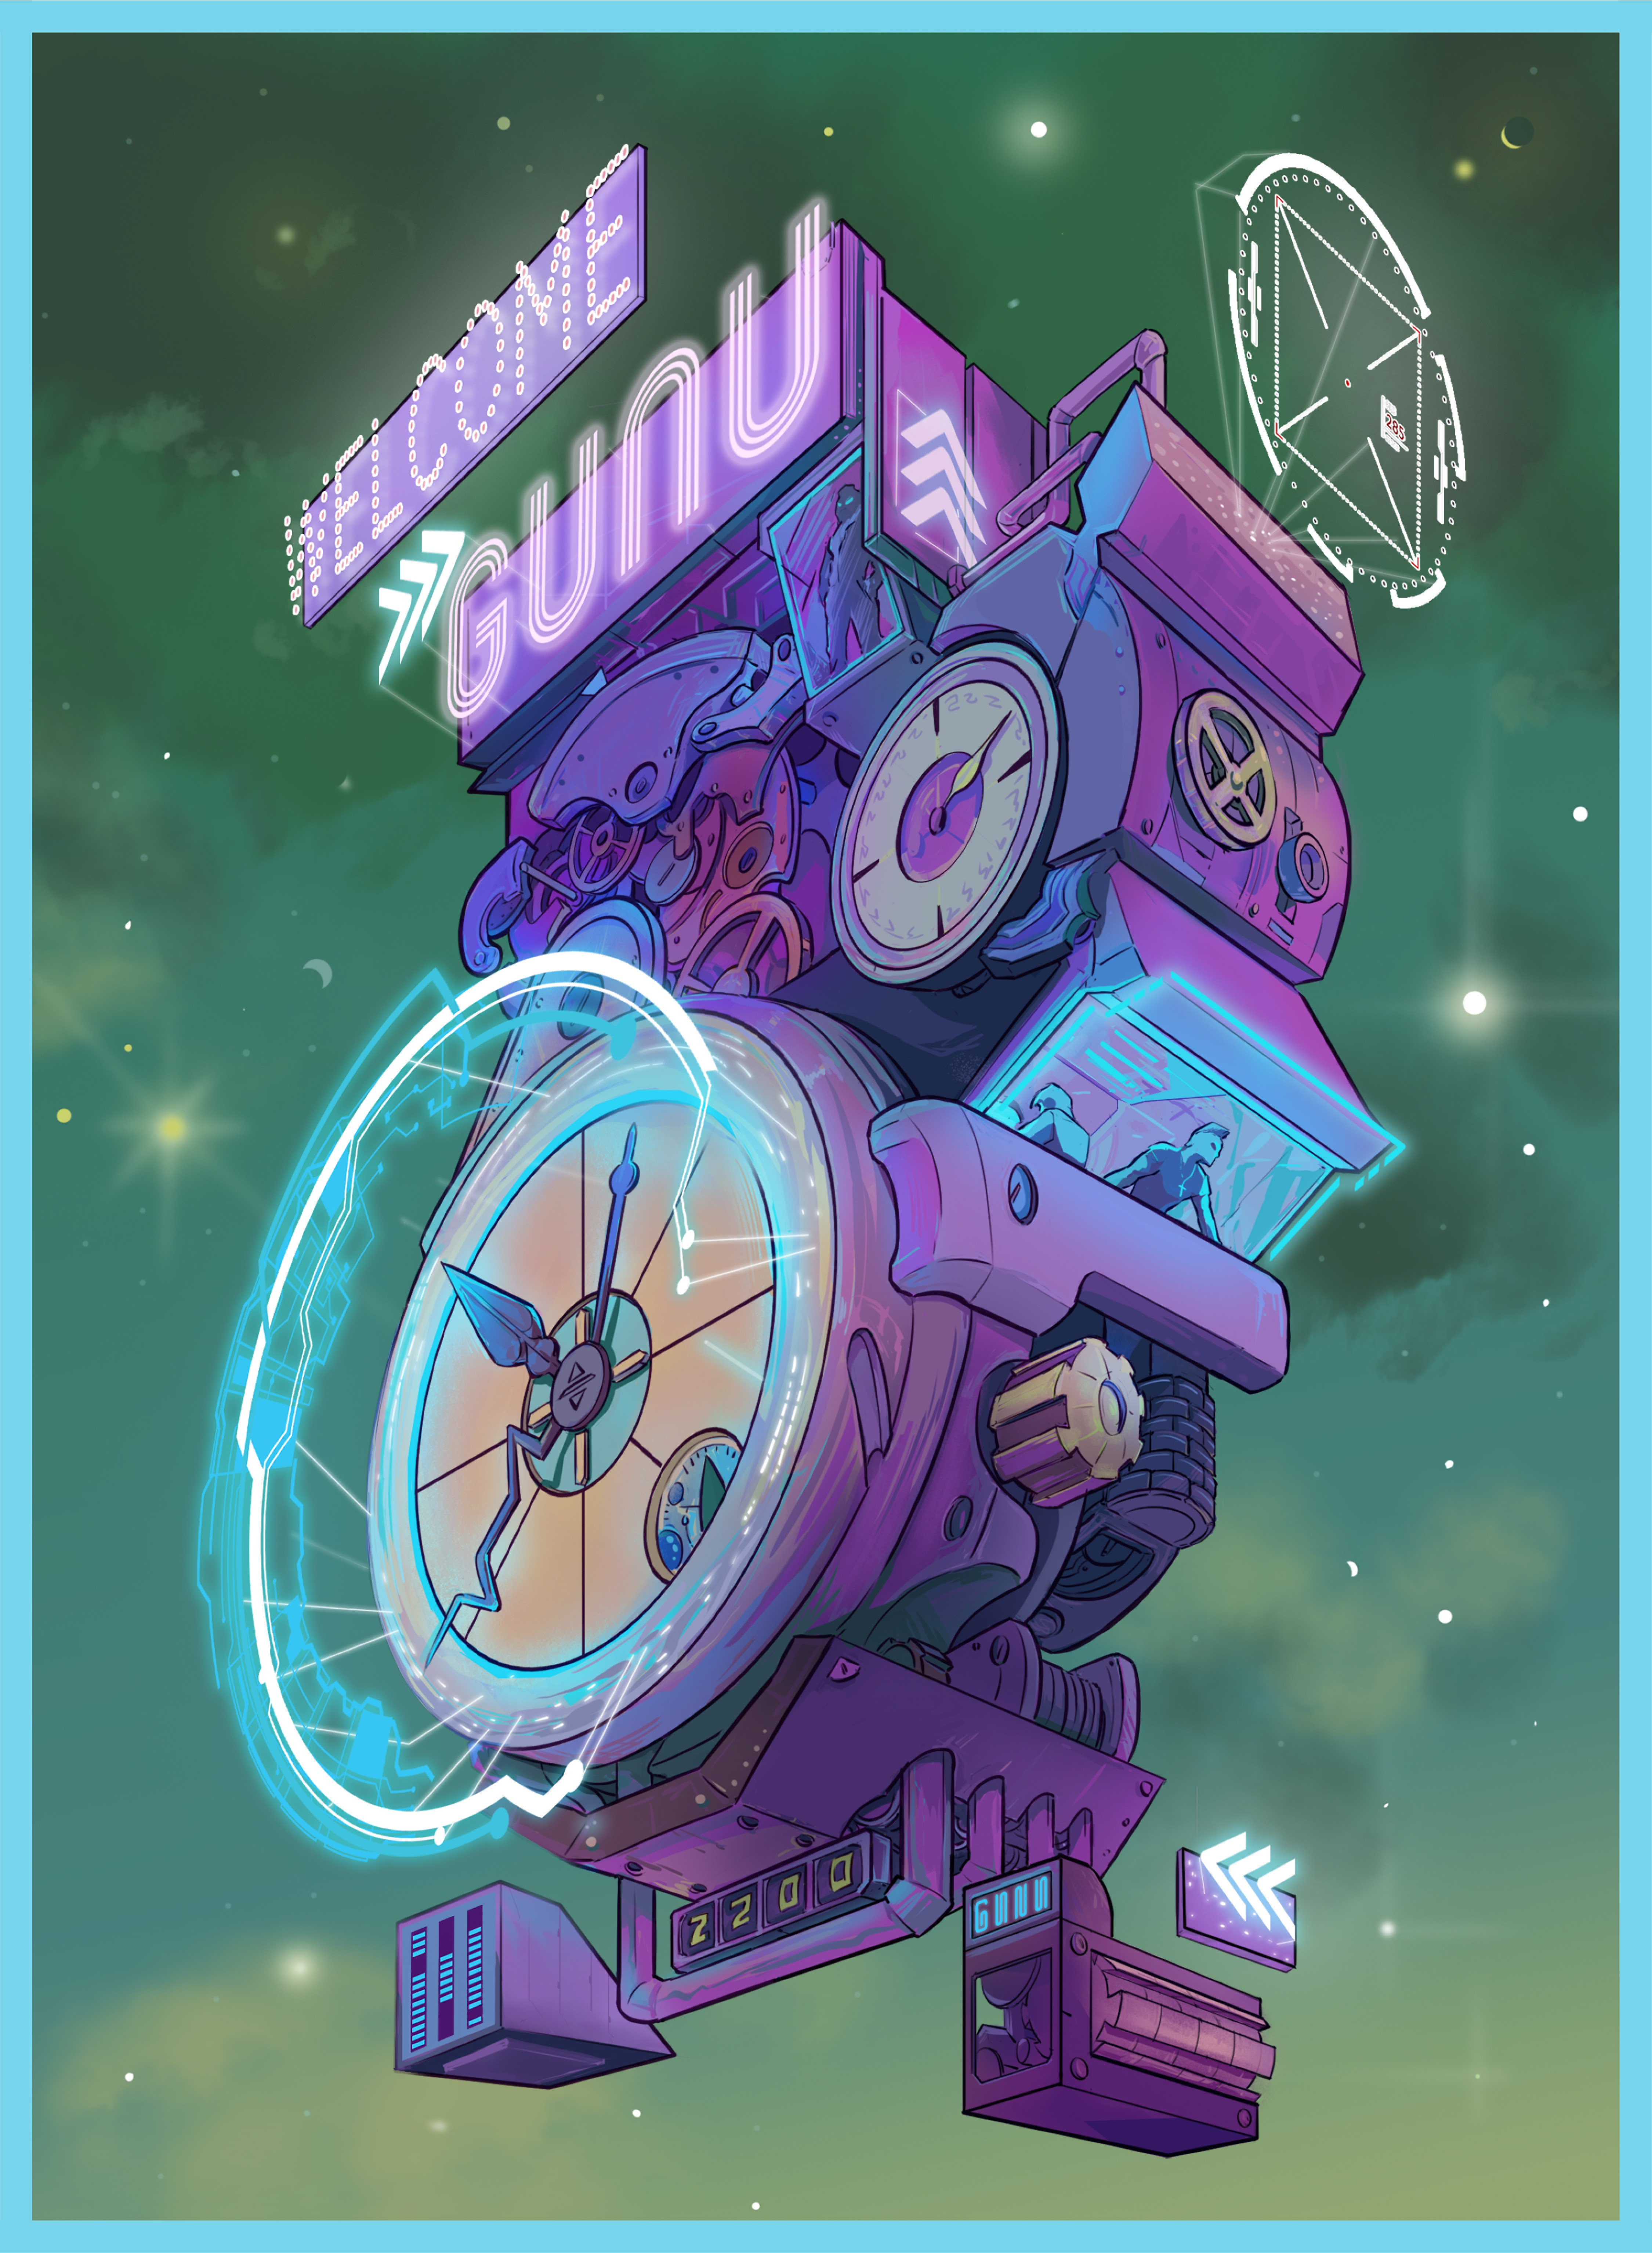 Cyberpunk illustration of watches to appeal to watch collectors.